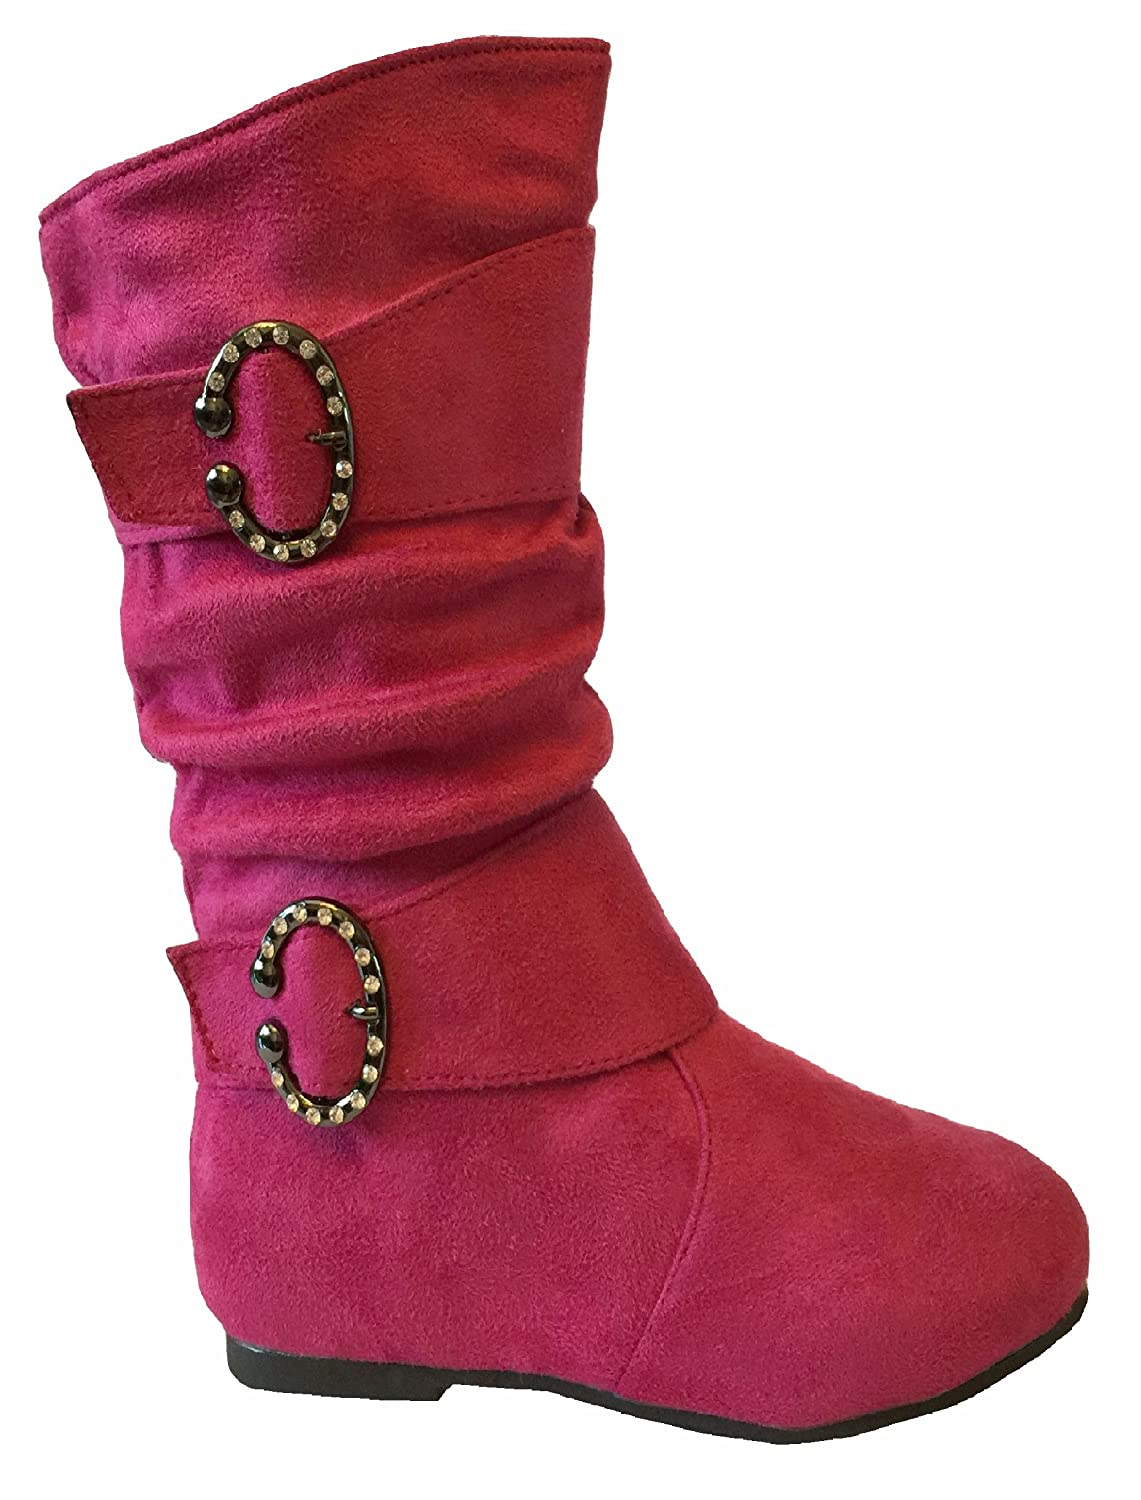 EyesOnStyle New Girls Slouch Comf Tall Midcalf Suede Winter Boots Shoes 4 M Toddler, H. PinkC063